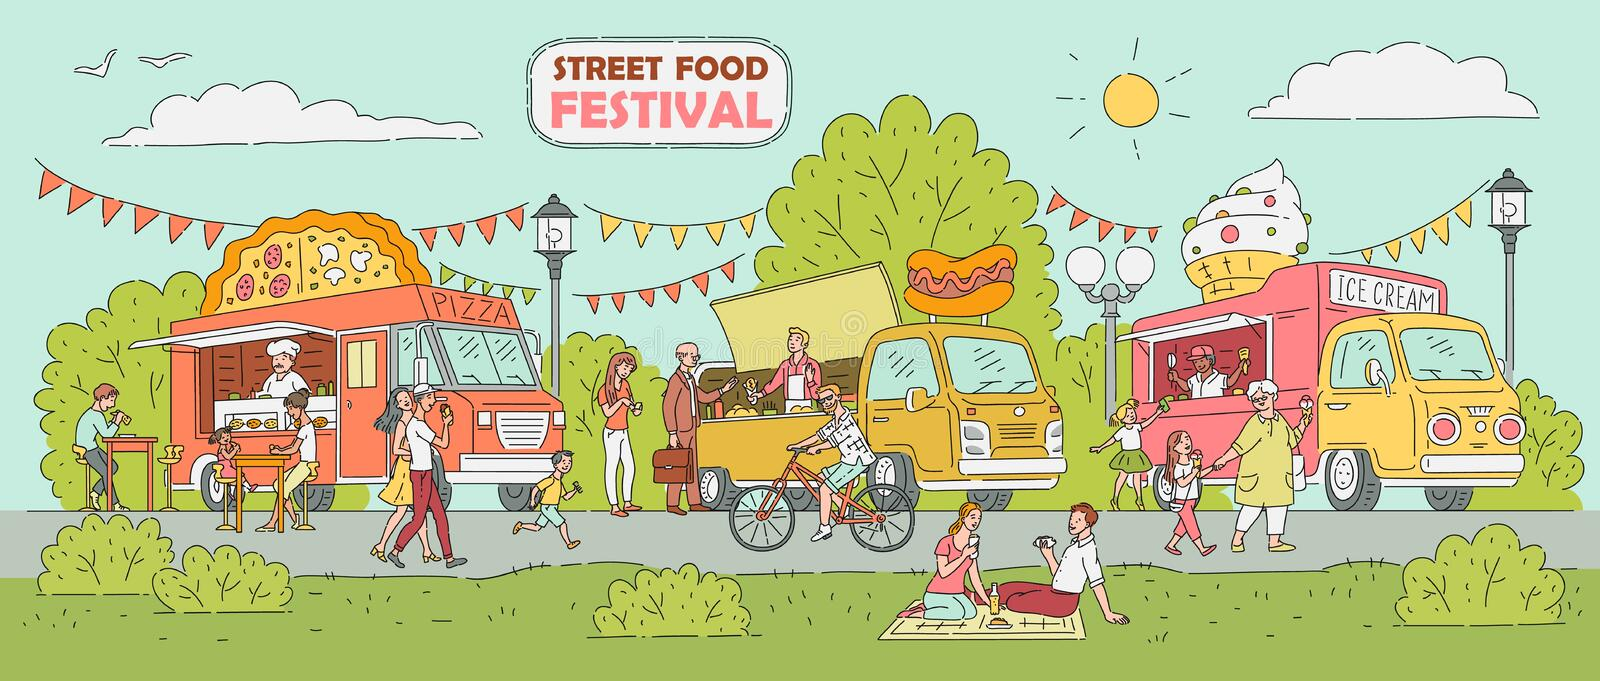 Street food festival - ice cream truck, pizza vendor car, hot dog stand royalty free illustration